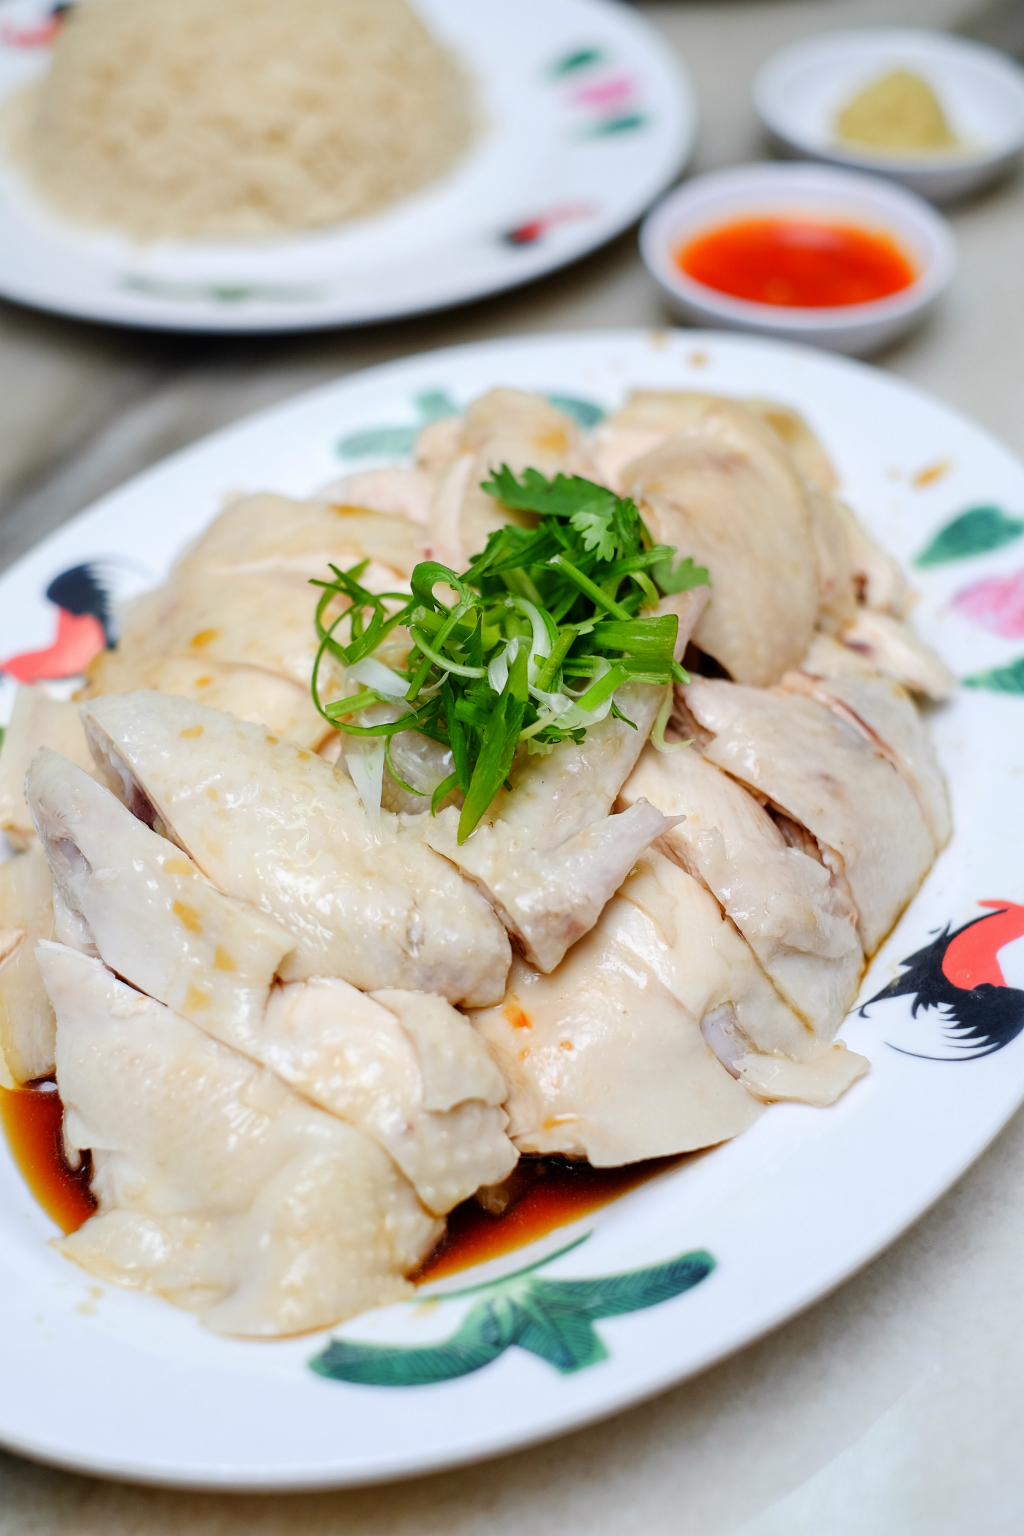 Wee Nam Kee Chicken Rice's poached chicken close up